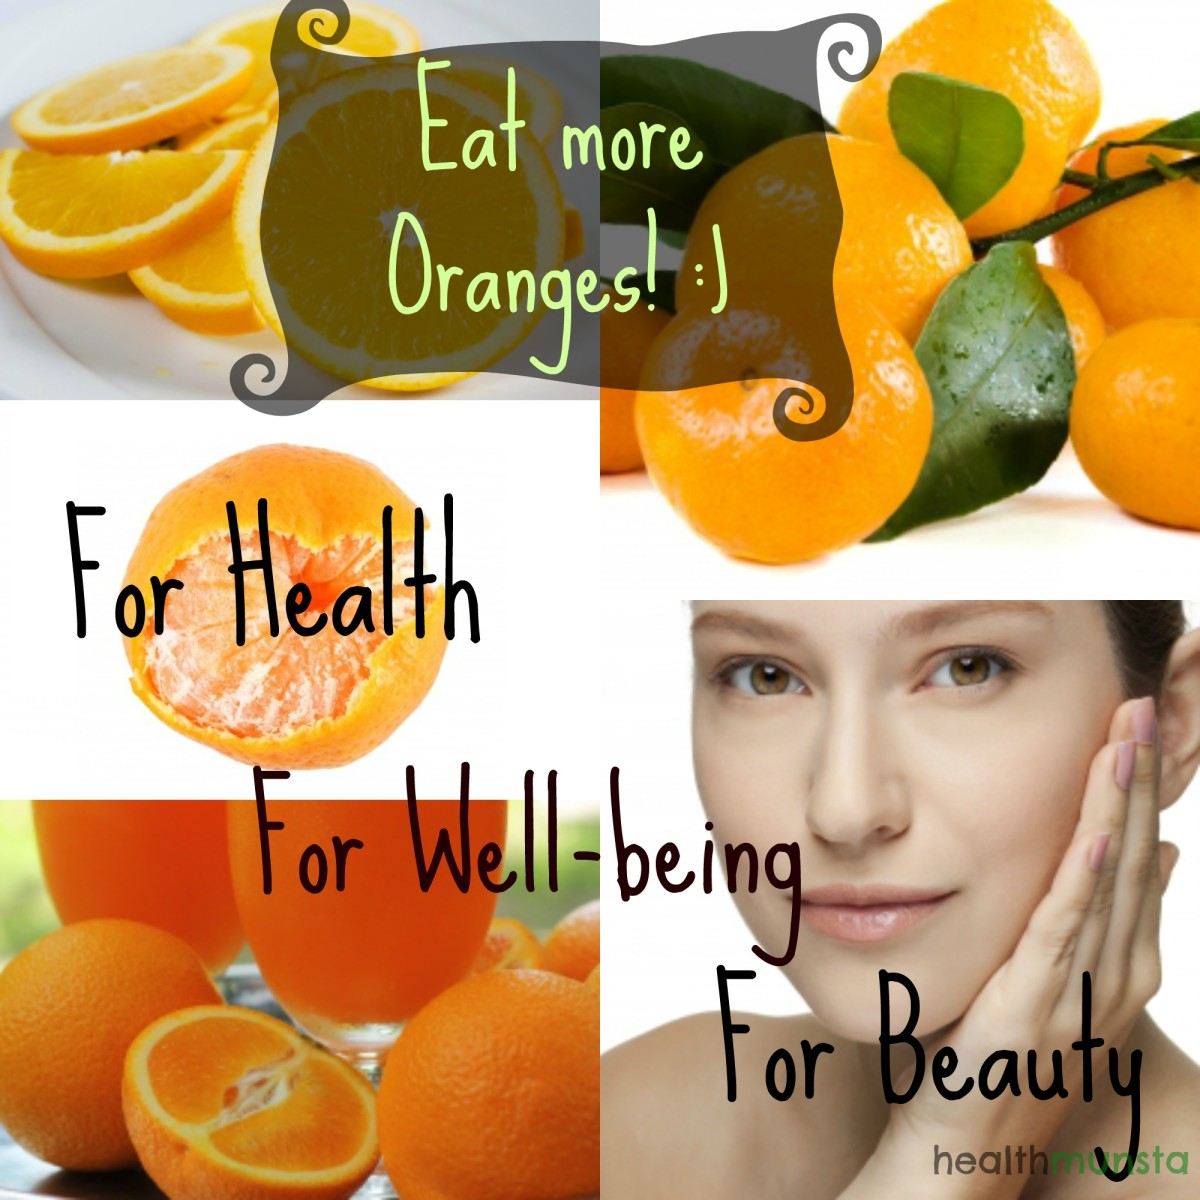 Health Benefits of Oranges, Photo by healthmunsta, Image Courtesy of freedigitalphotos.net.